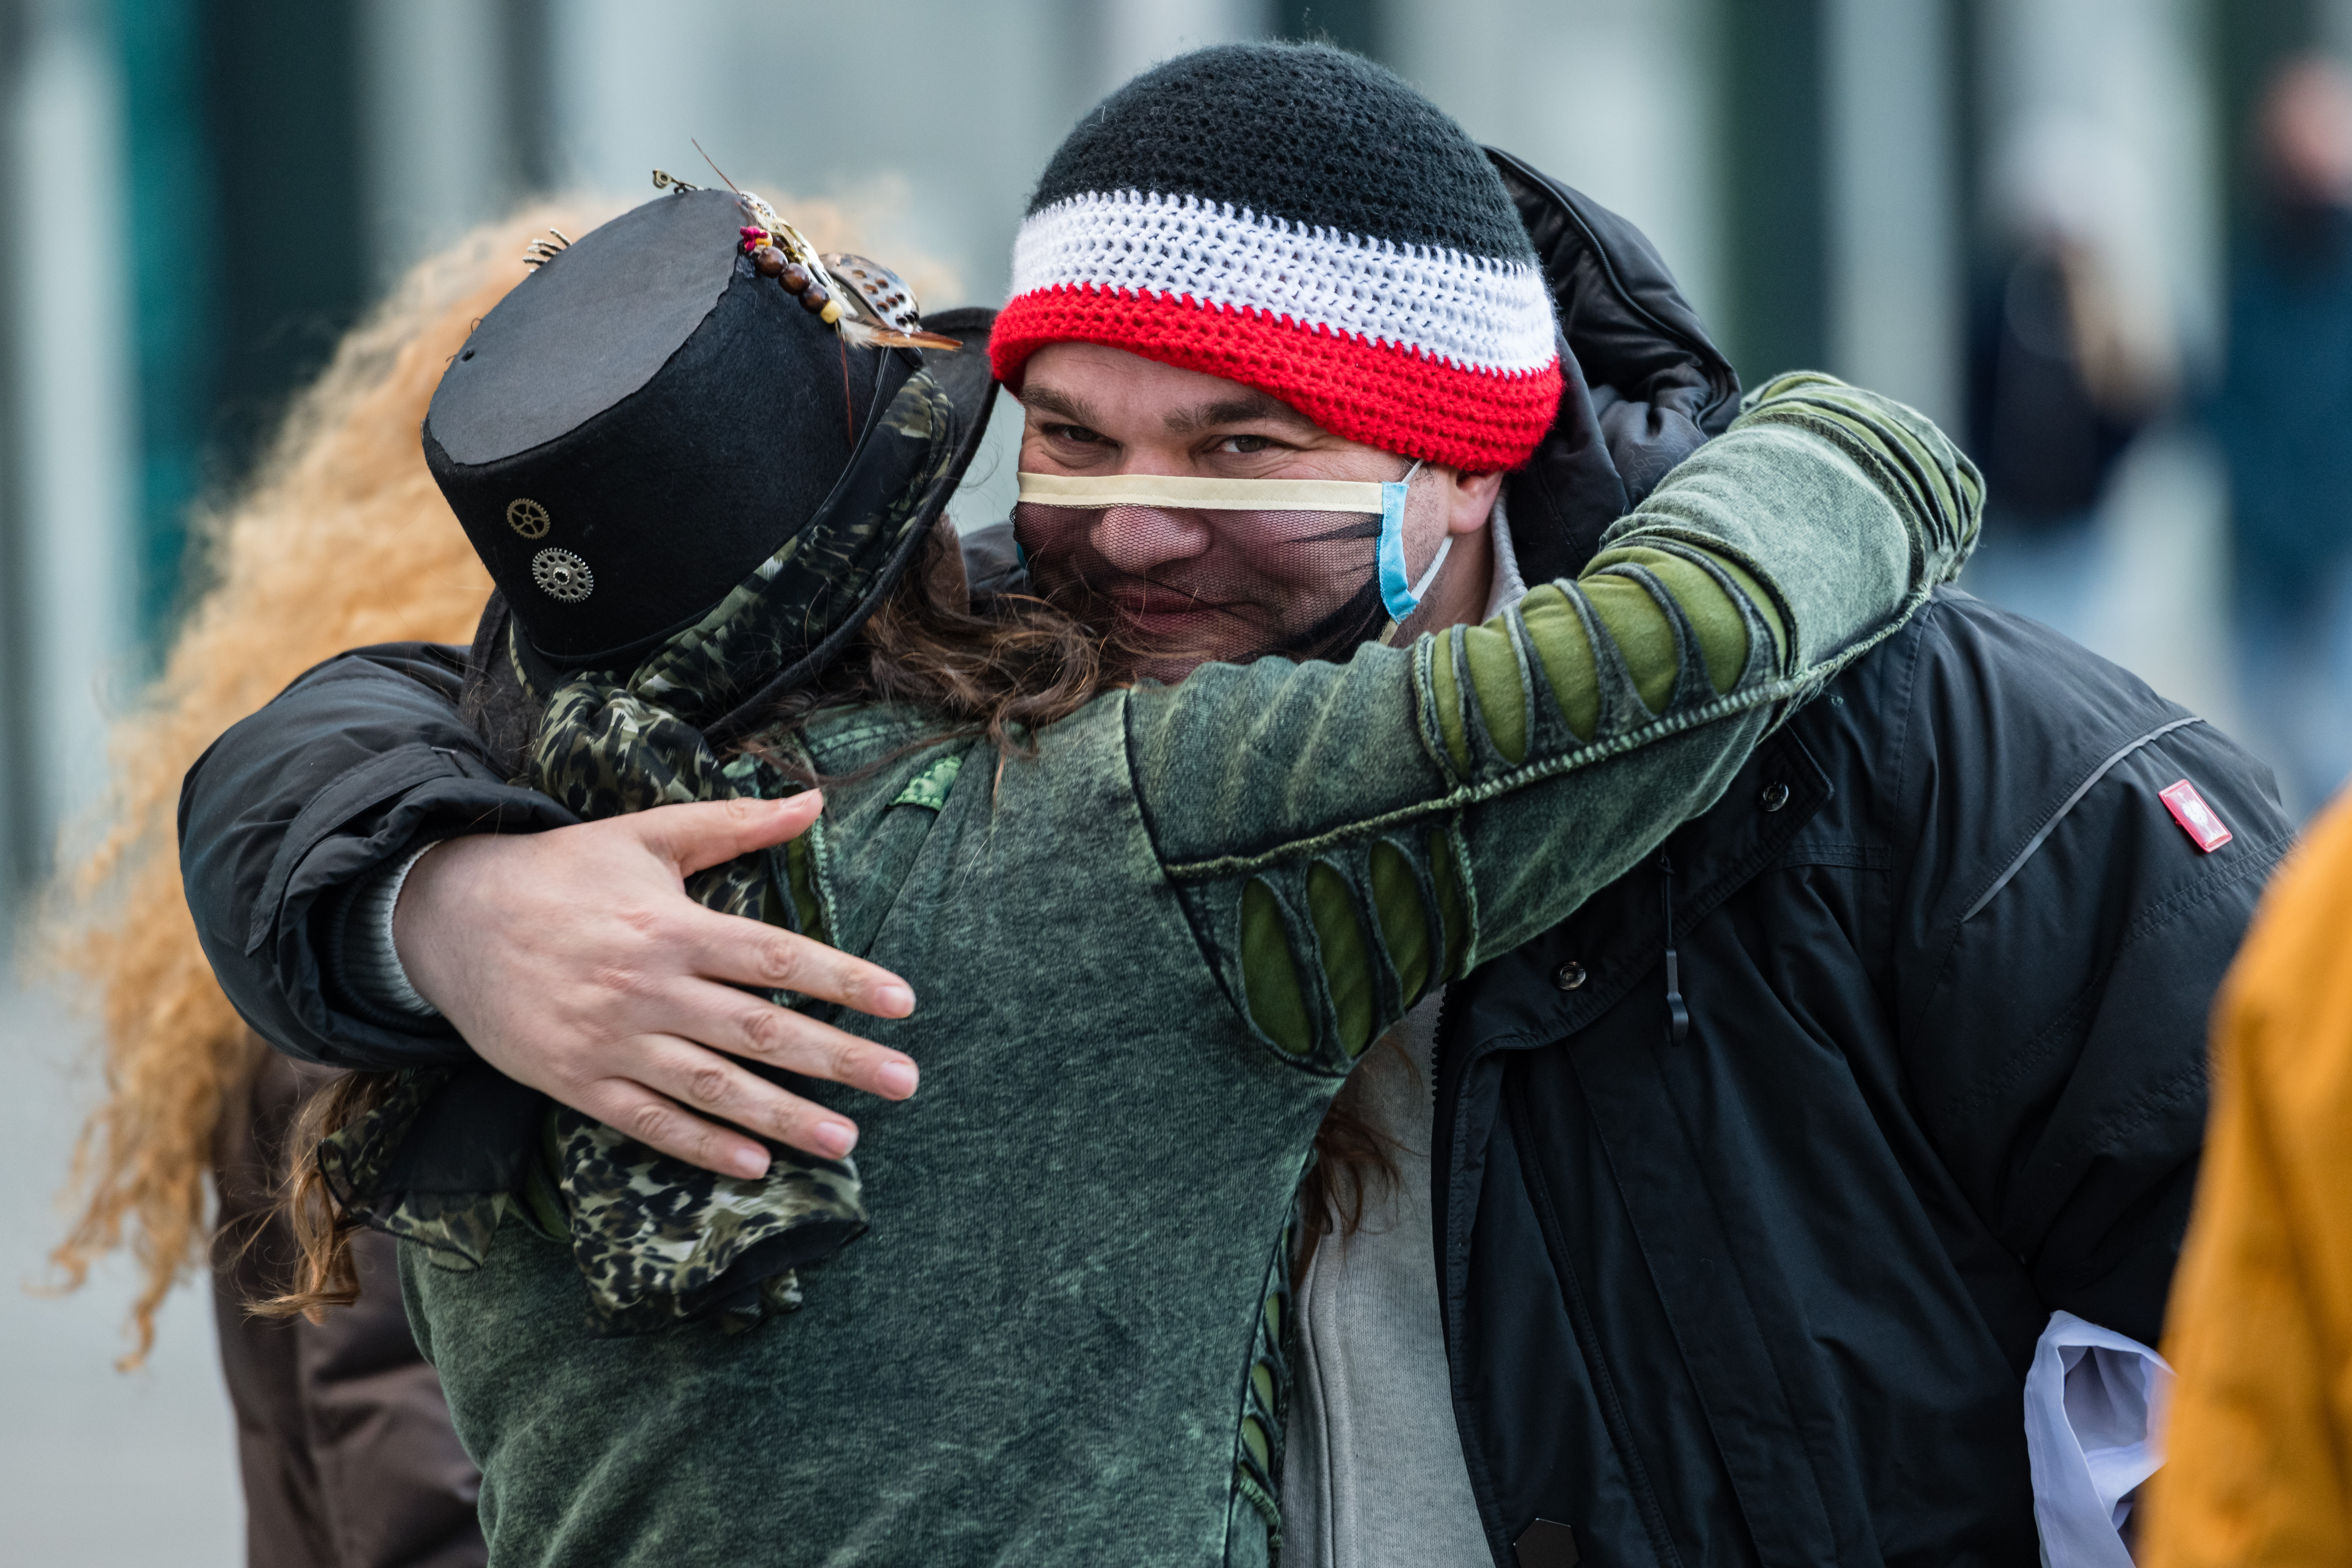 Two maskless protesters embrace in Leipzig in November last year. Photo: Stringer/Getty Images